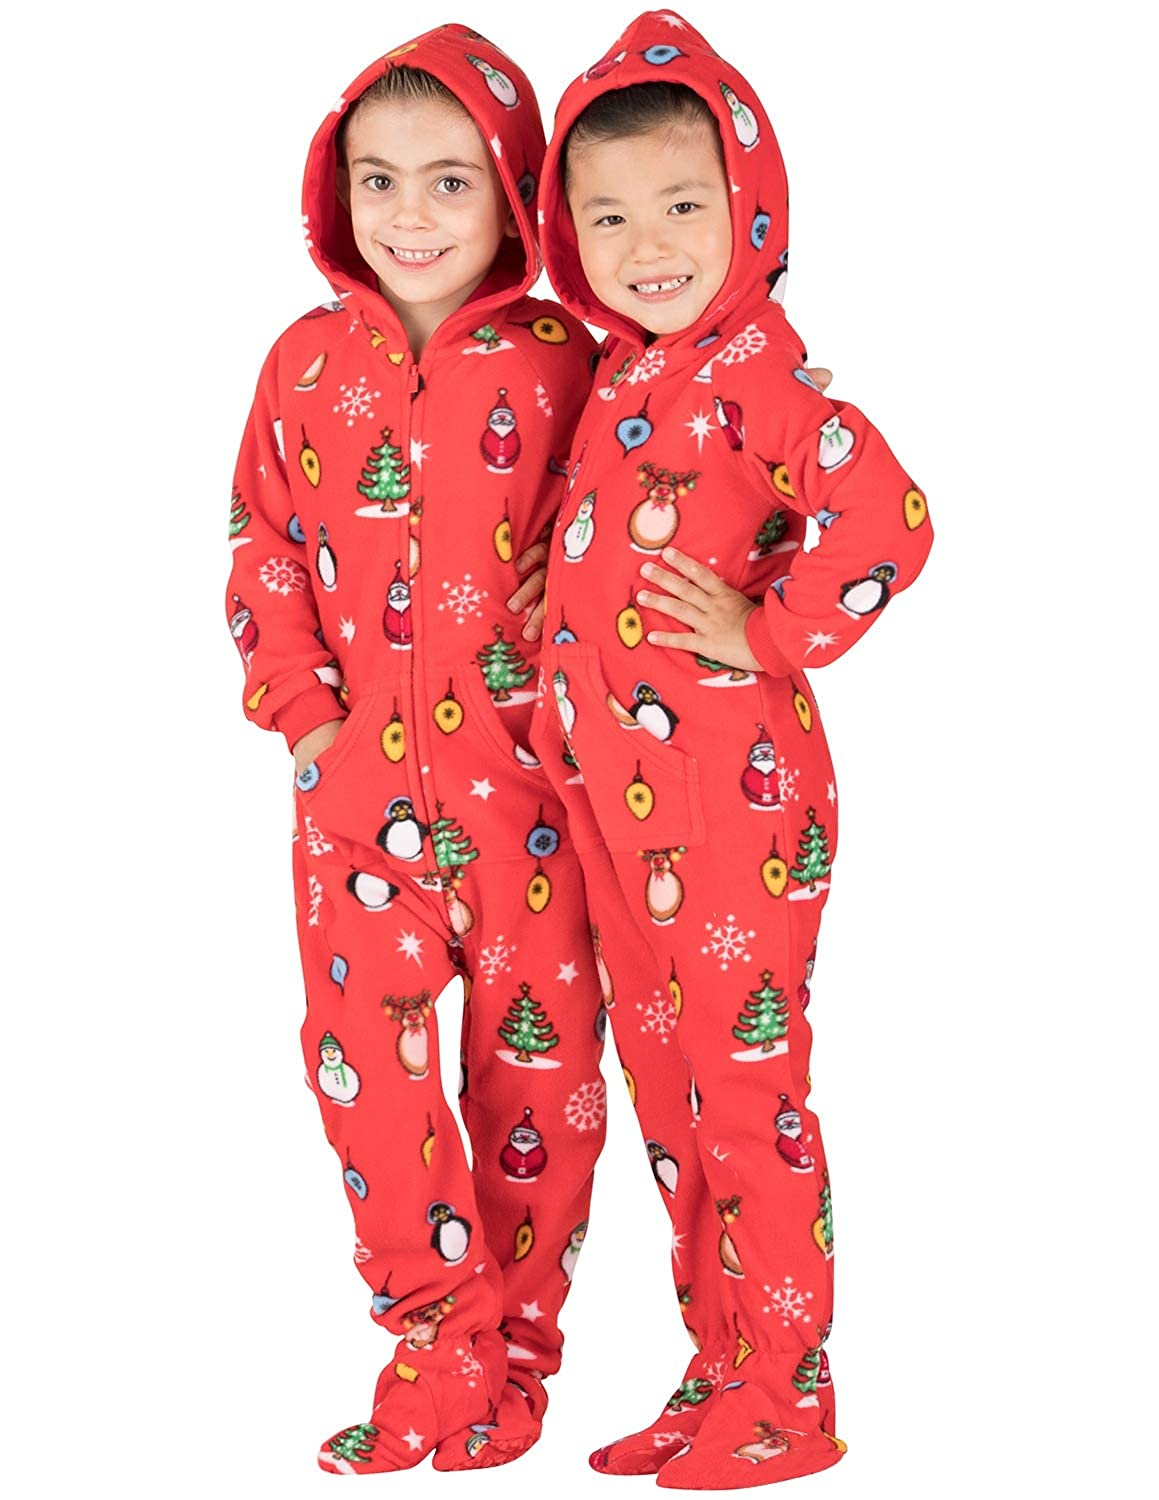 Christmas Footie Pajamas For Kids.Footed Pajamas Family Matching Red Christmas Hoodie Onesies For Boys Girls Men Women And Pets